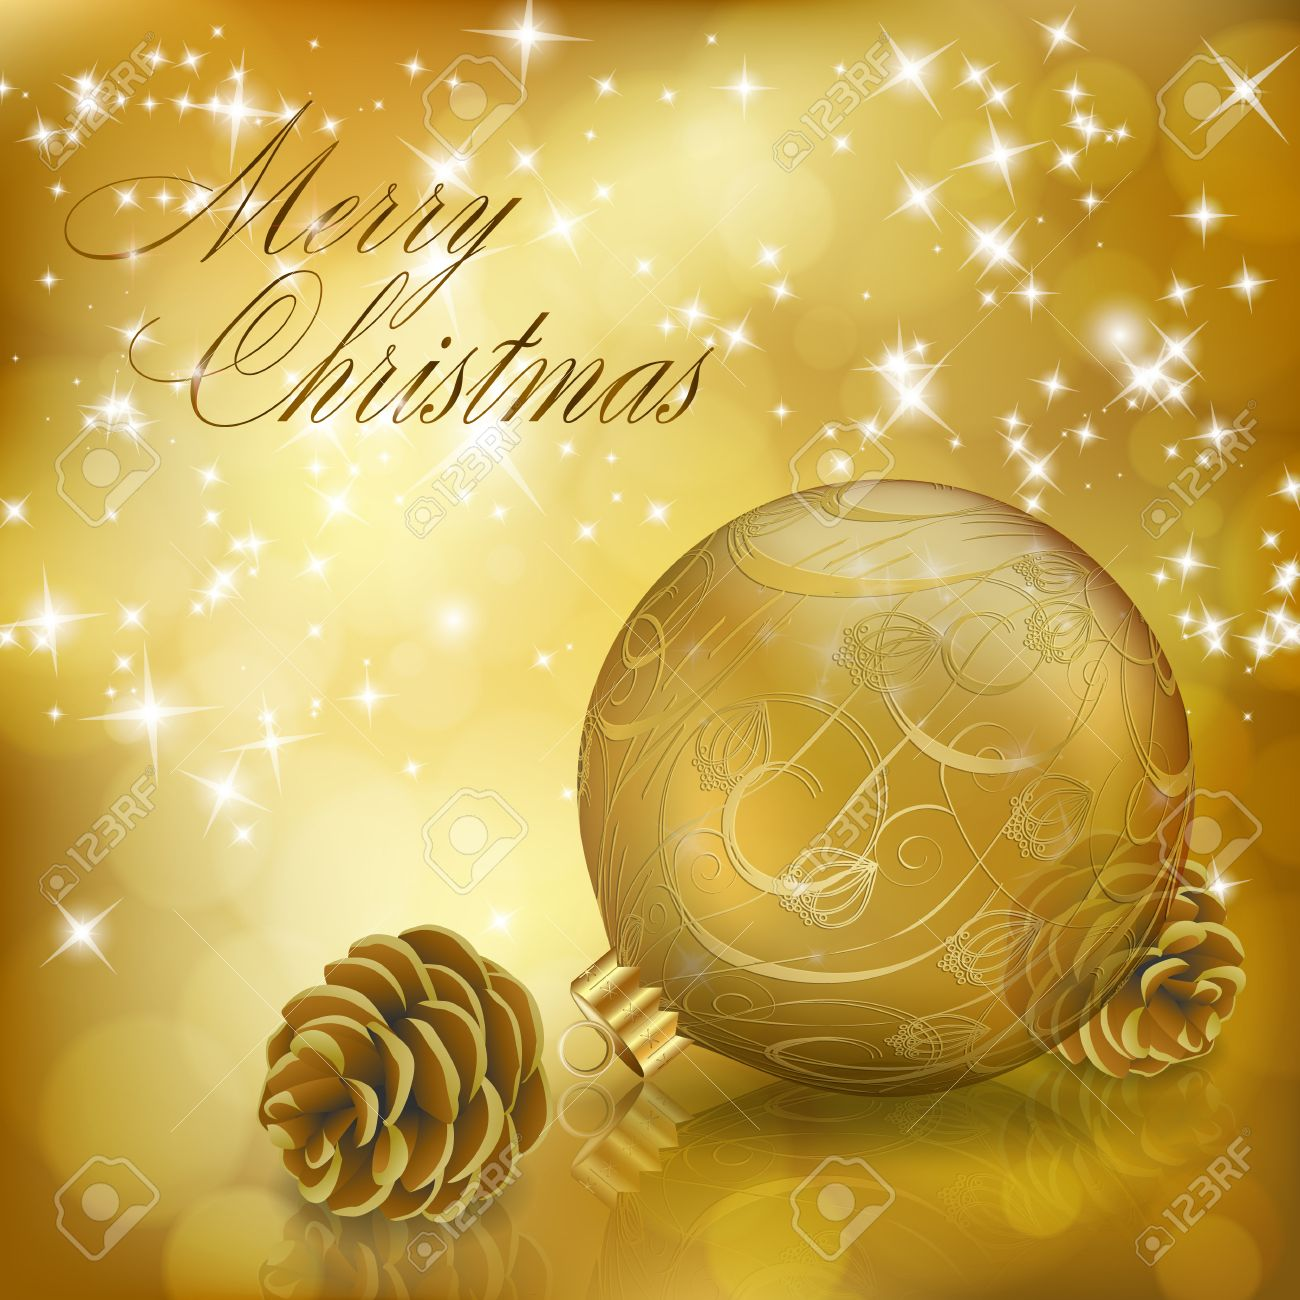 Golden Xmas Greeting Card With Gold Christmas Ball And Cones ...